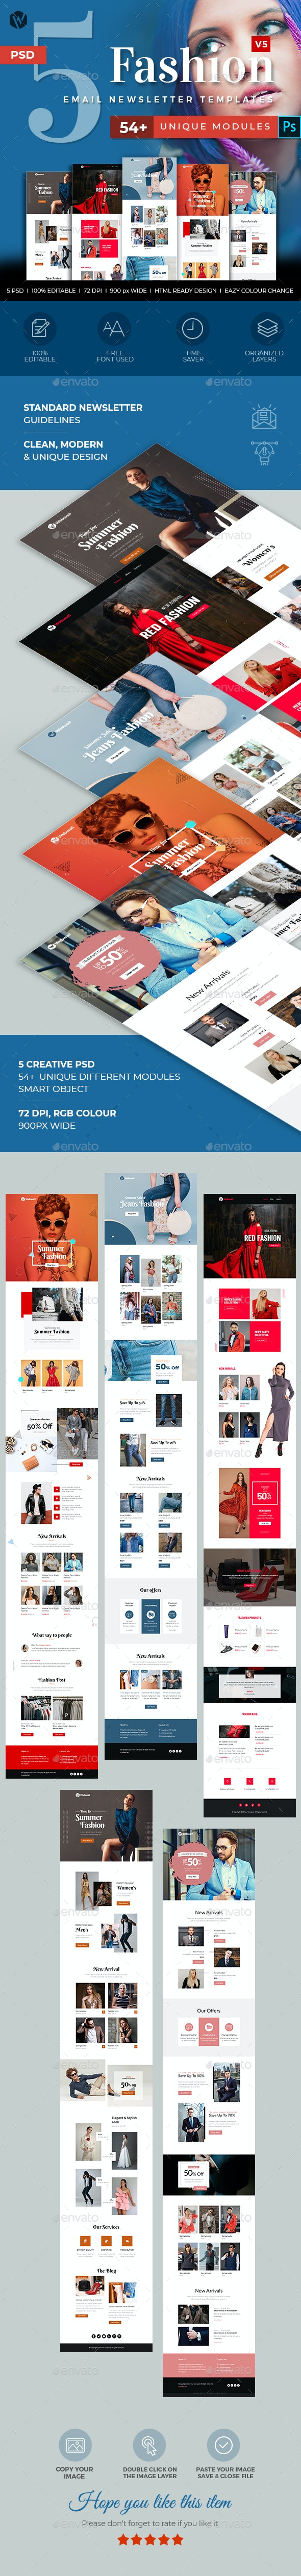 5 Fashion Email Newsletter PSD Templates v5 - E-newsletters Web Elements